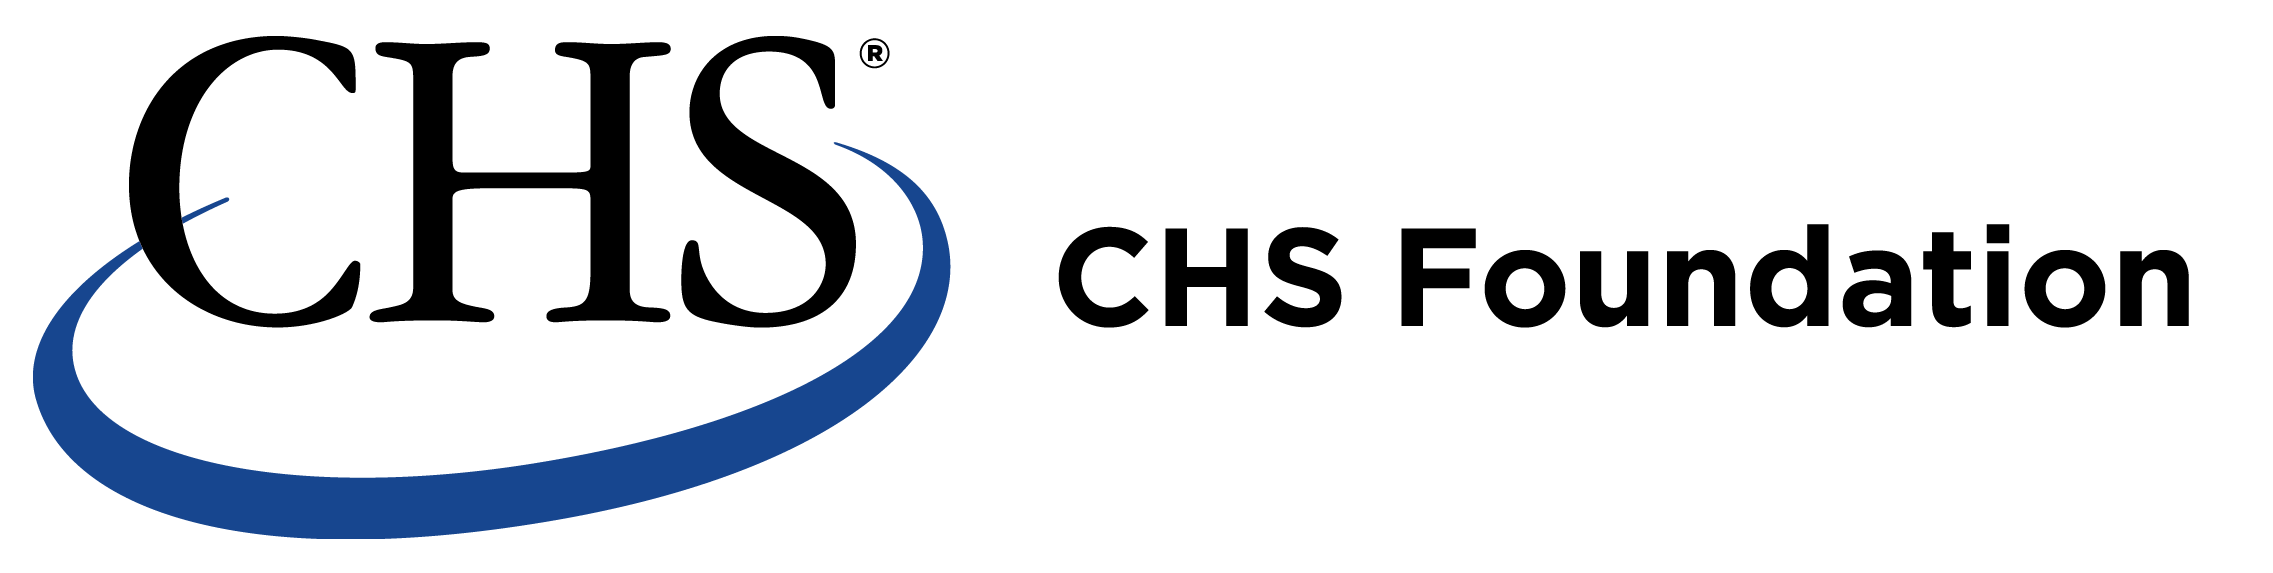 CHS_Foundation.png